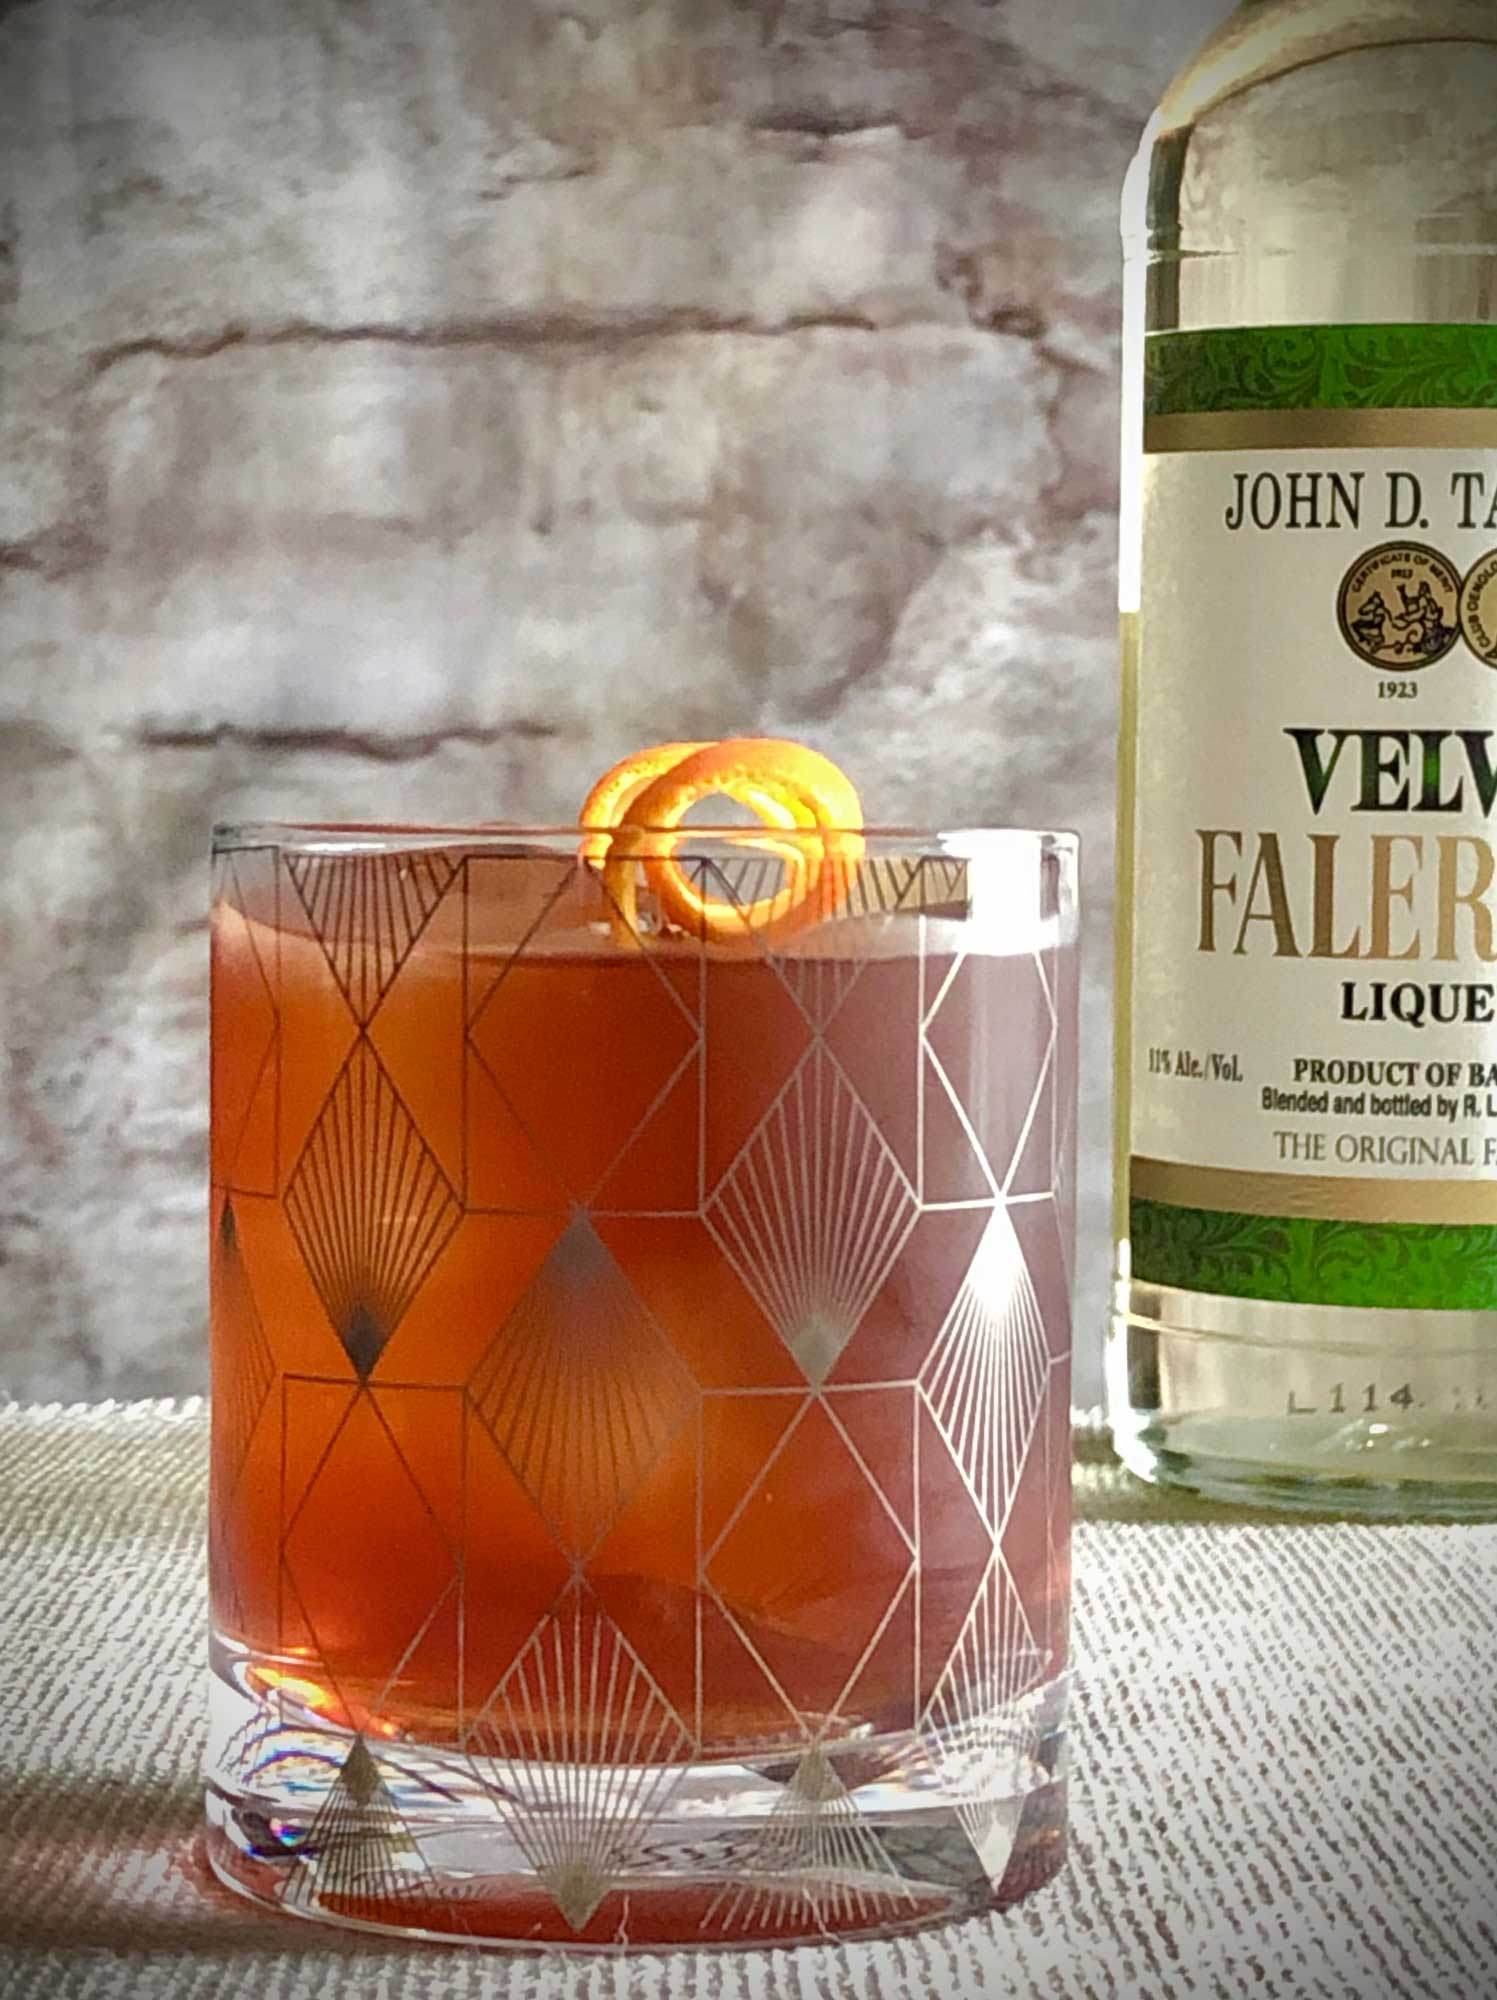 An example of the Maïs et Huile, the mixed drink (cocktail) featuring Matifoc Rancio Sec, John D. Taylor's Velvet Falernum, and Angostura bitters; photo by Lee Edwards